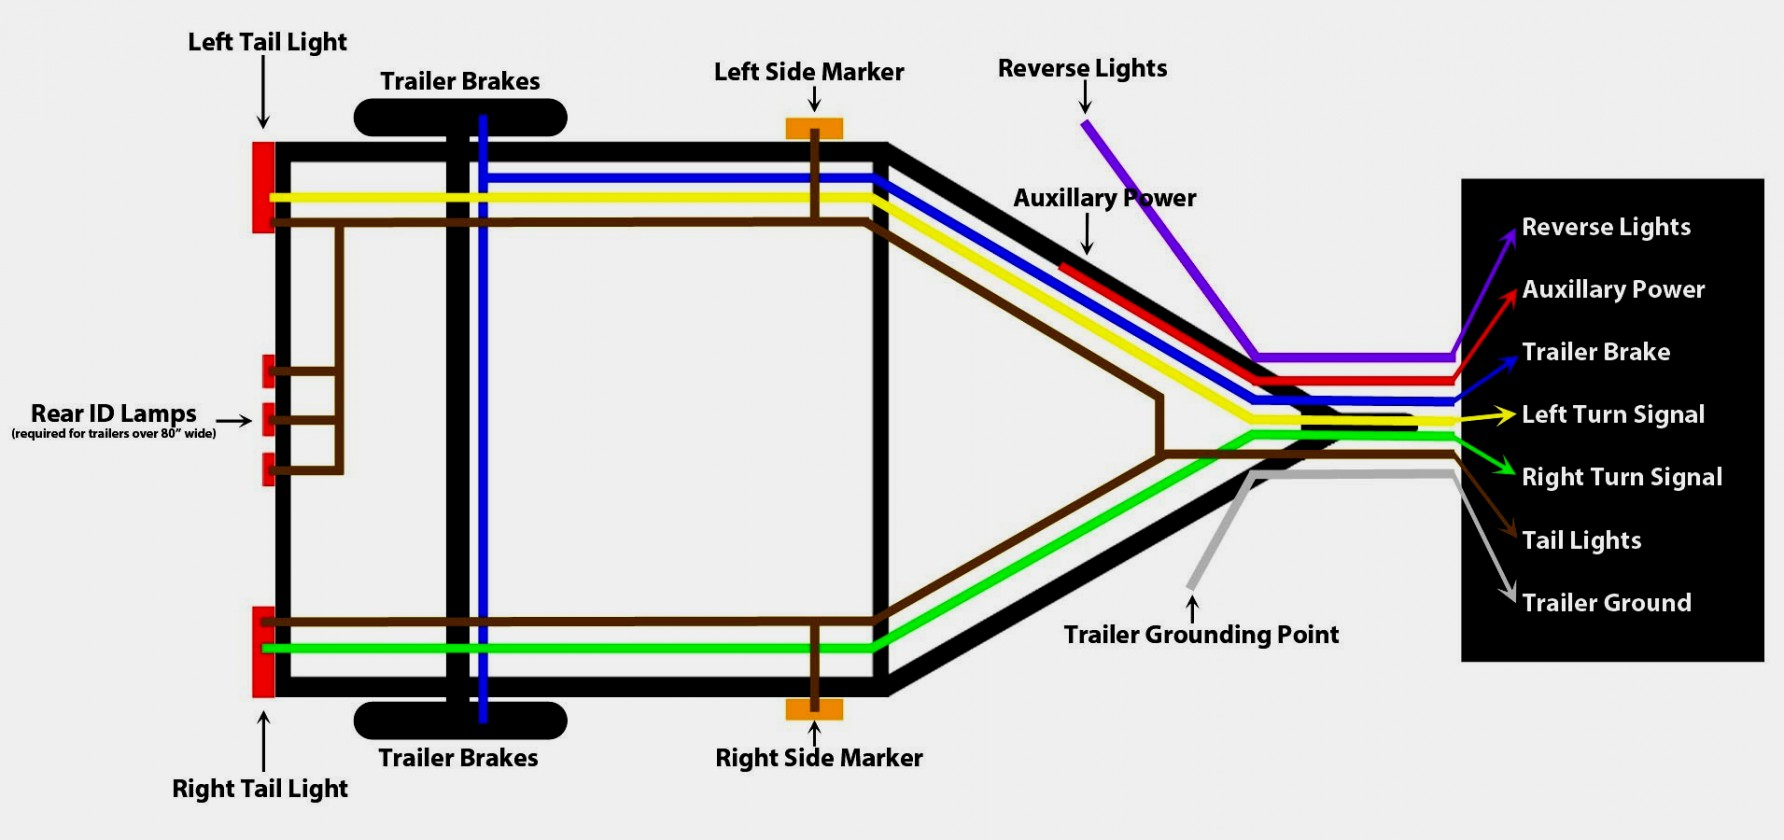 Wiring Diagram For Car Trailer Lights - Schematics Wiring Diagram - Car Trailer Wiring Diagram Uk